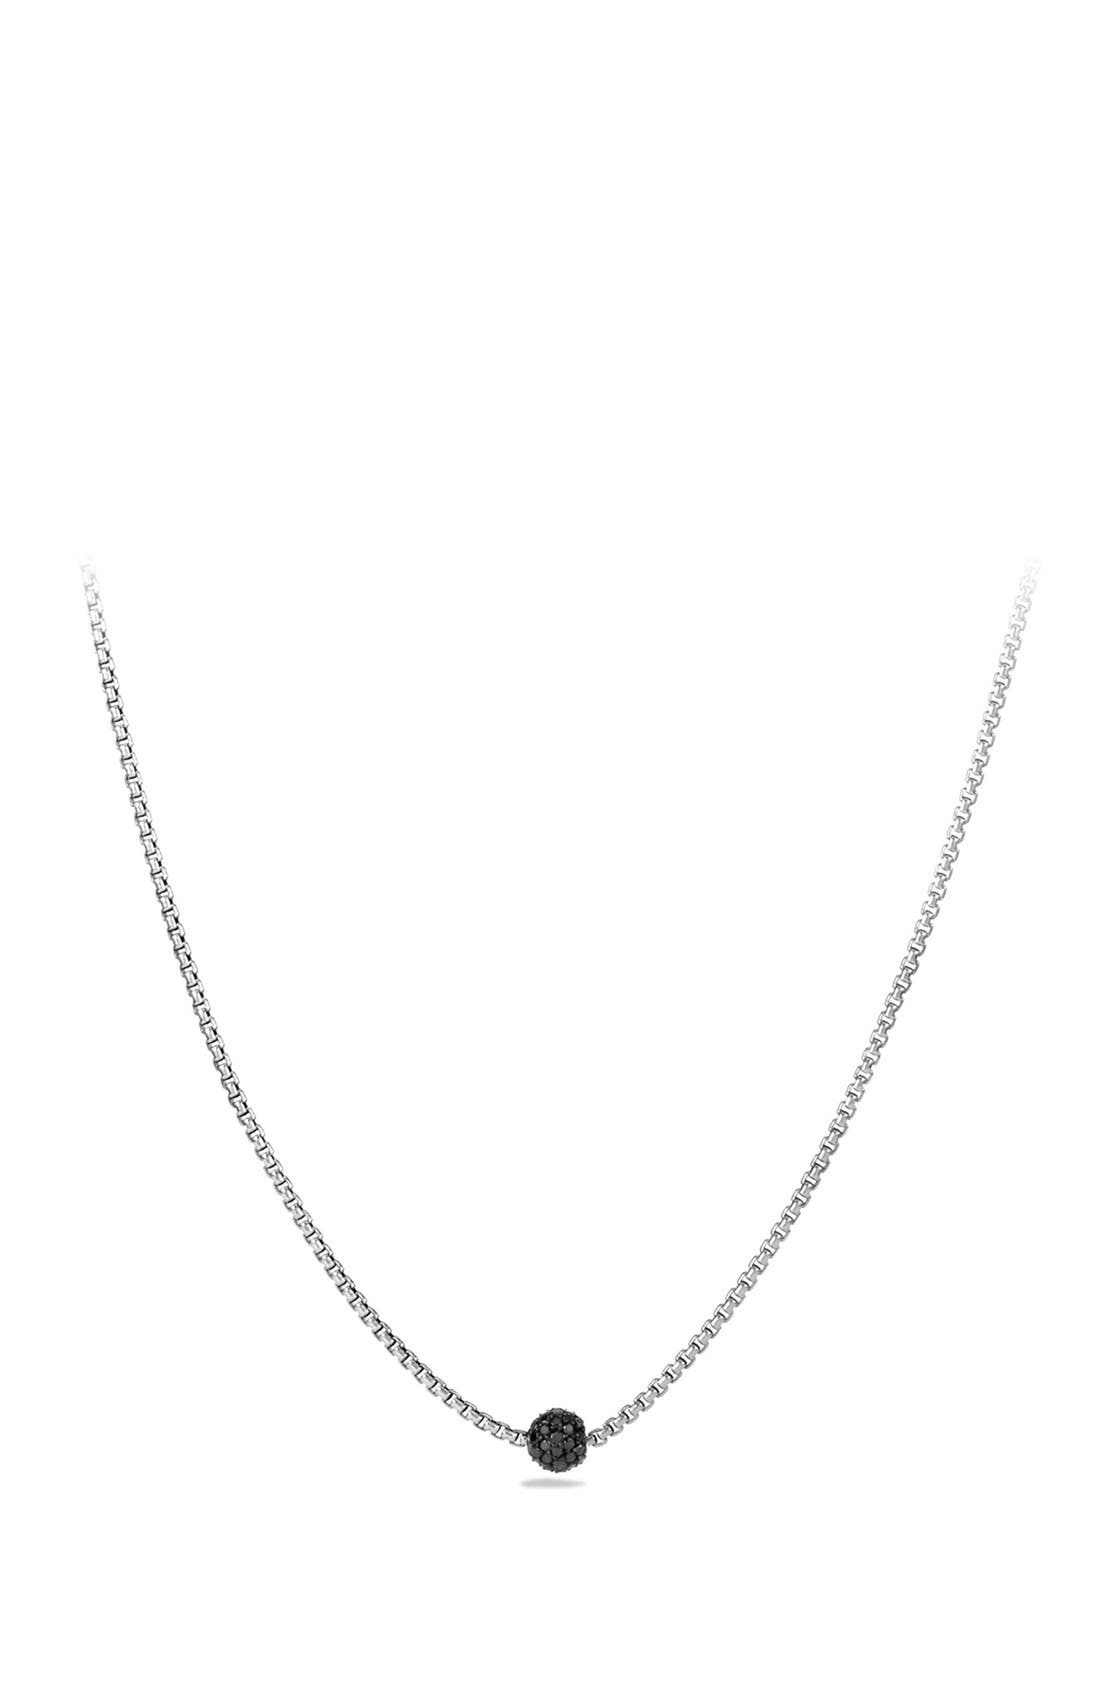 Alternate Image 1 Selected - David Yurman 'Petite Pavé' Necklace with Diamonds